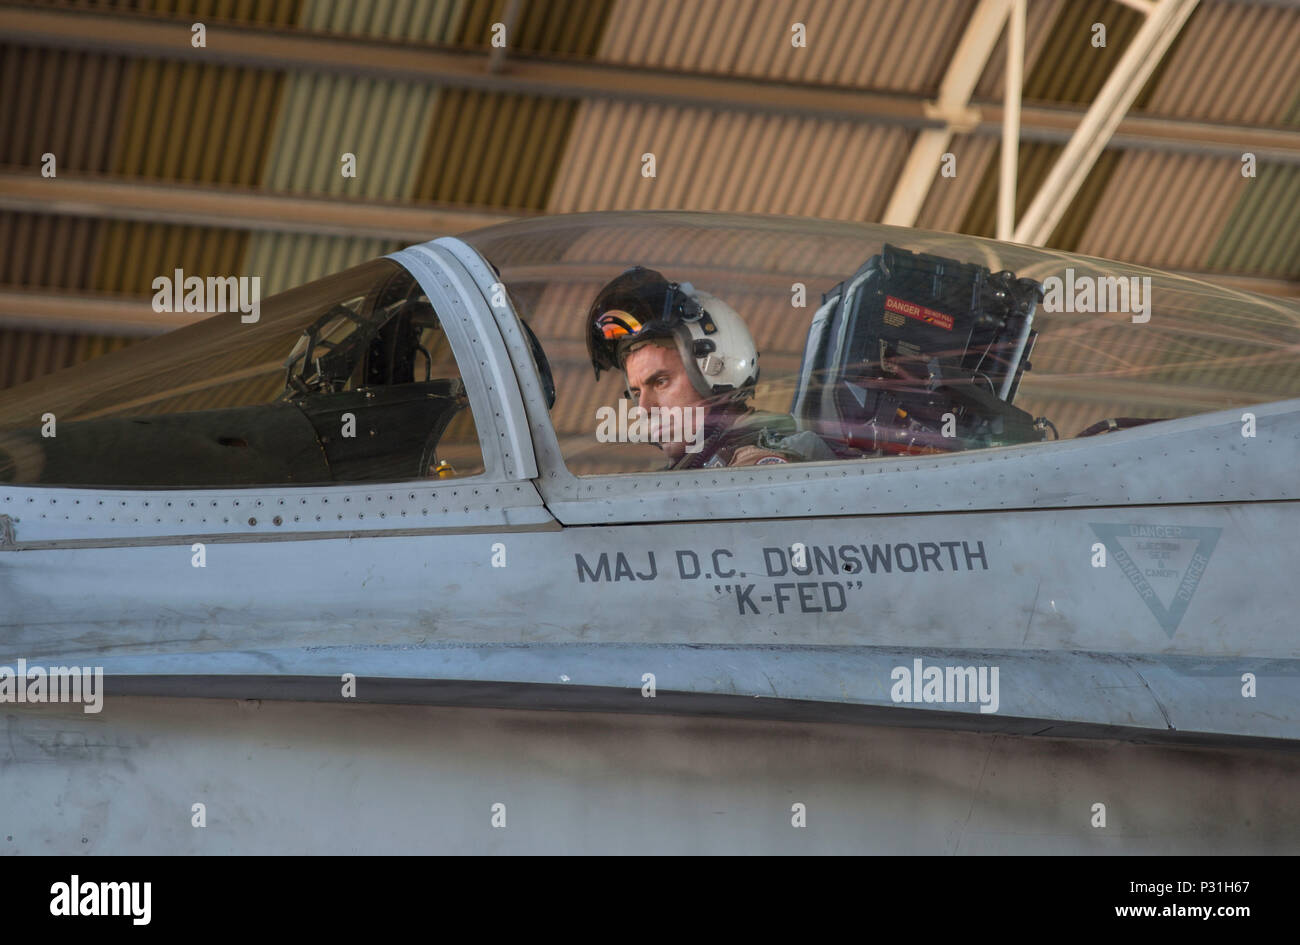 U.S. Marine Corps Maj. David Dunsworth, an F/A-18C Hornet pilot with Marine Fighter Attack Squadron (VMFA) 122, prepares to taxi out of a hangar during Southern Frontier at Royal Australian Air Force Base Tindal, Australia, Aug. 24, 2016. VMFA-122 executed close air support missions for ground combat units conducting exercises at Bradshaw Range Complex. Southern Frontier is a three week unit level training evolution helping the flying squadron gain qualifications and experience in low, air ground, high explosive ordnance delivery. (U.S. Marine Corps photo by Cpl. Nicole Zurbrugg) - Stock Image